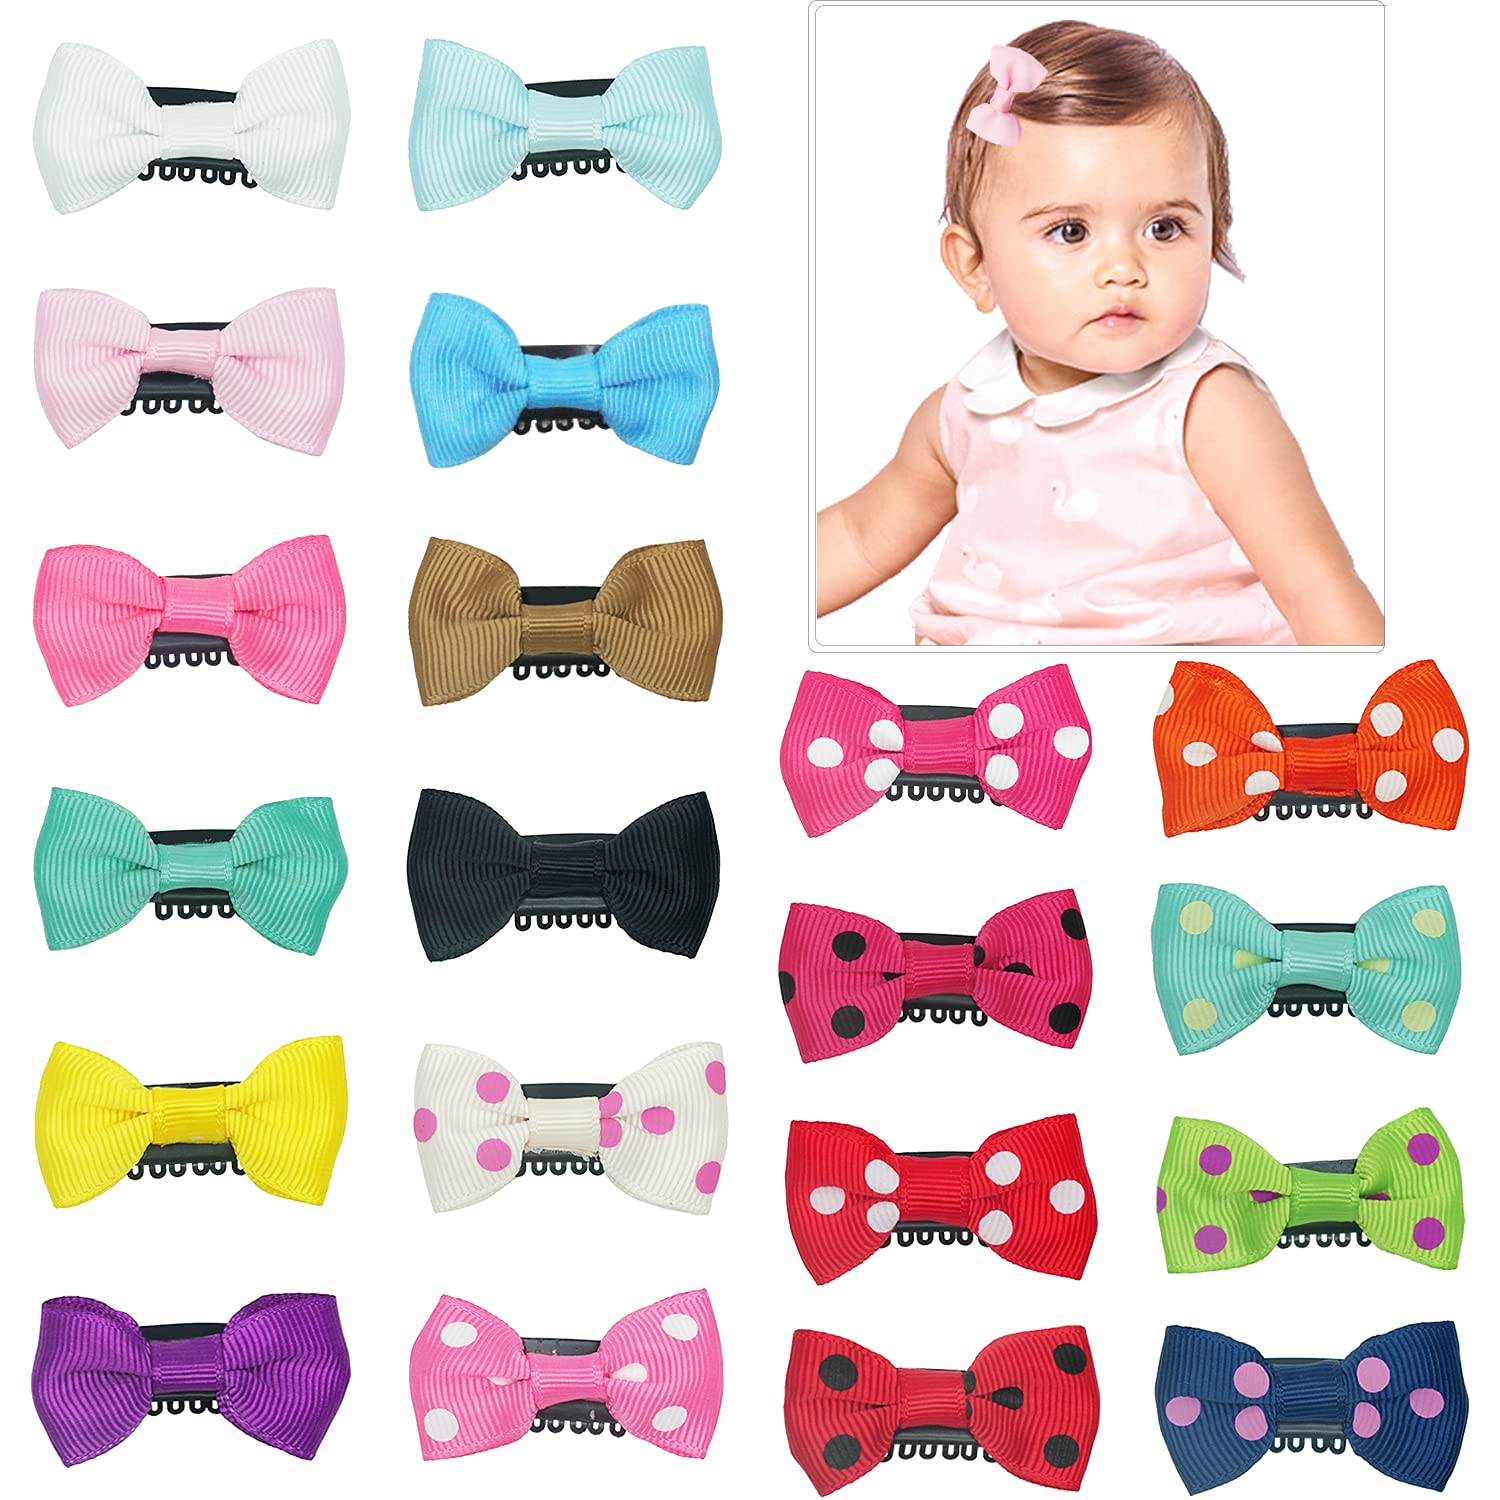 20 Pack Handmade Tiny Hair Clips for Baby Fine Hair 1.75Inch Mini Grosgrain Ribbon Hair Bows Snap Hair Clips Barrettes Hair Accessories For Baby Girls Newborn Infant Toddlers